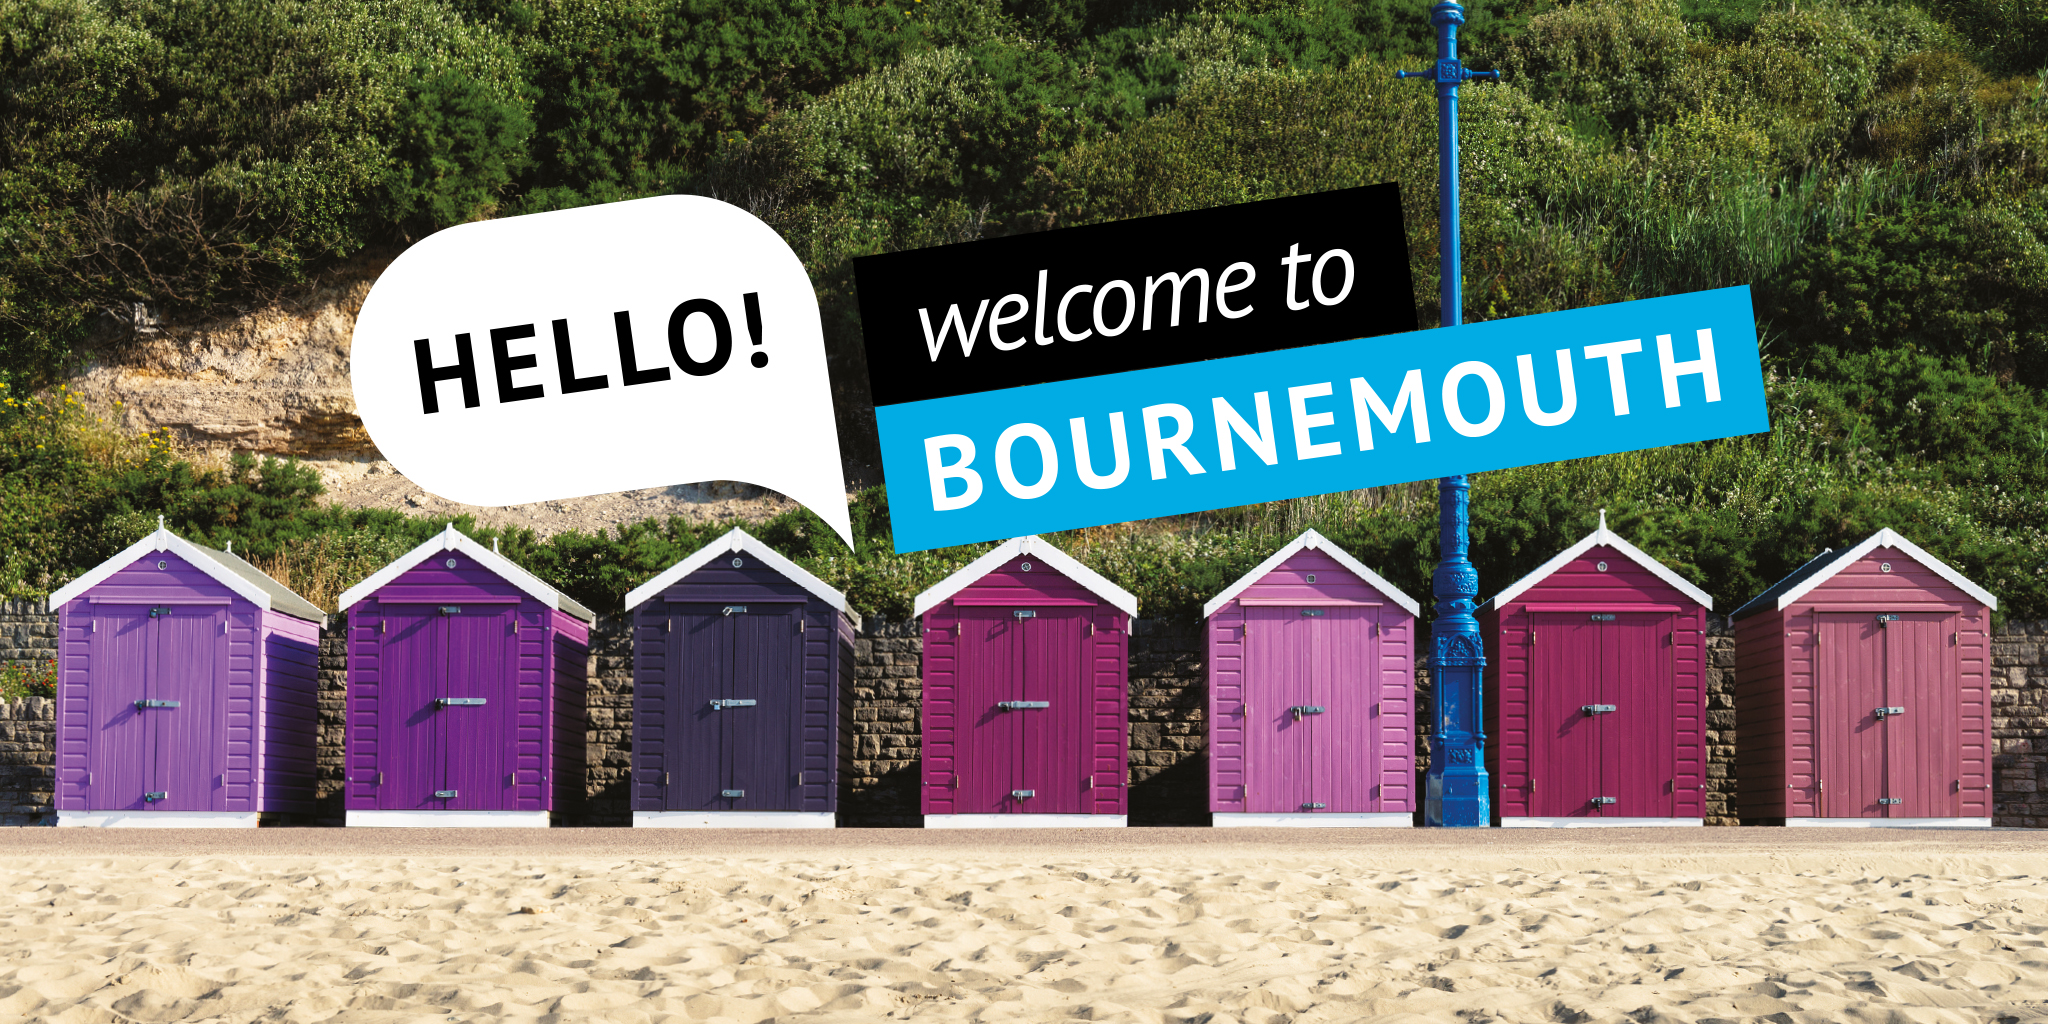 Photo of some pink and purple beach huts with the words 'Hello! Welcome to Bournemouth' overlaid